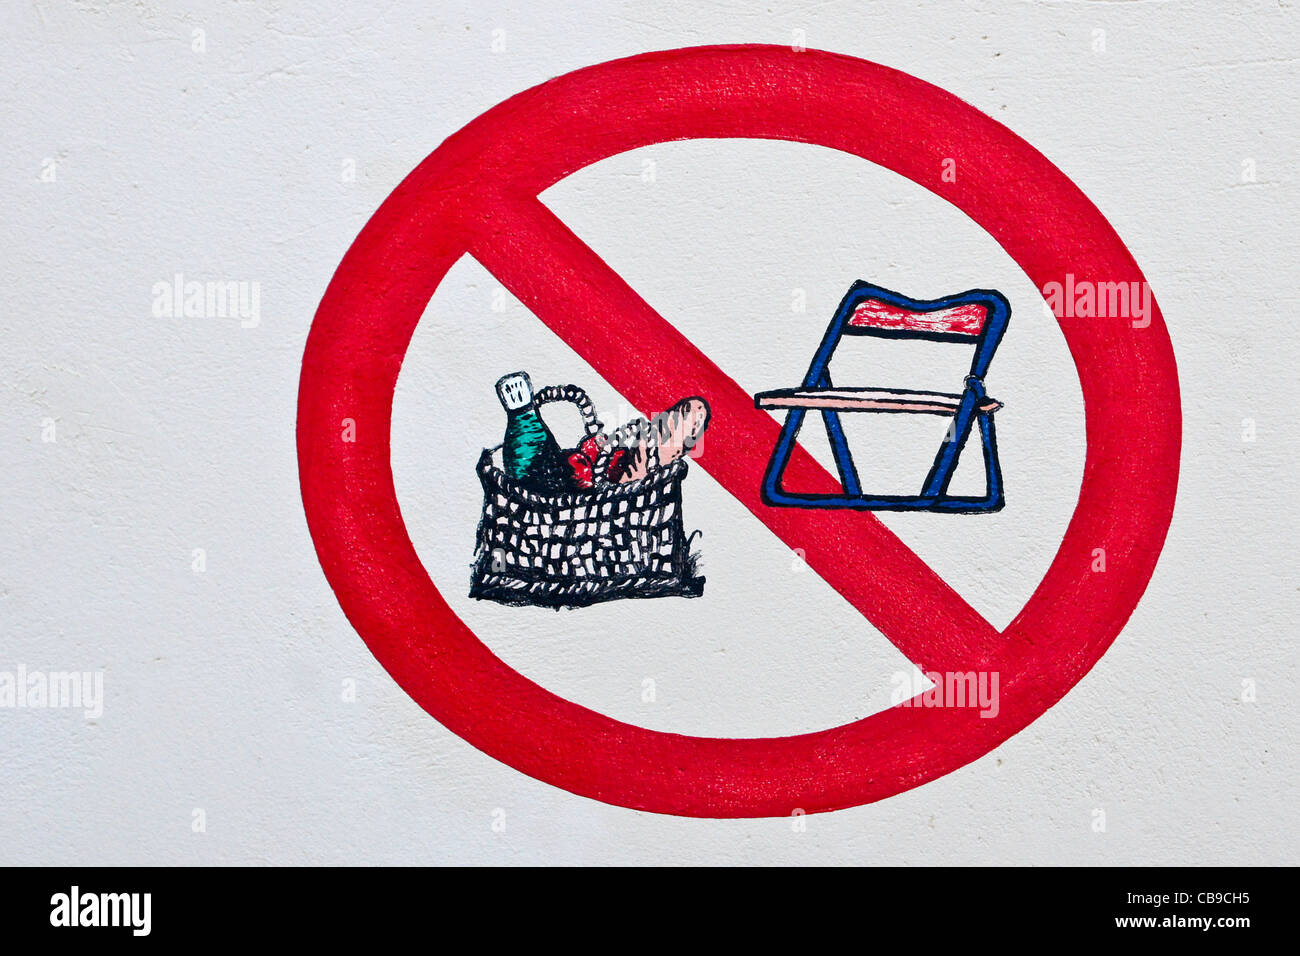 'No picnicking' sign - Stock Image